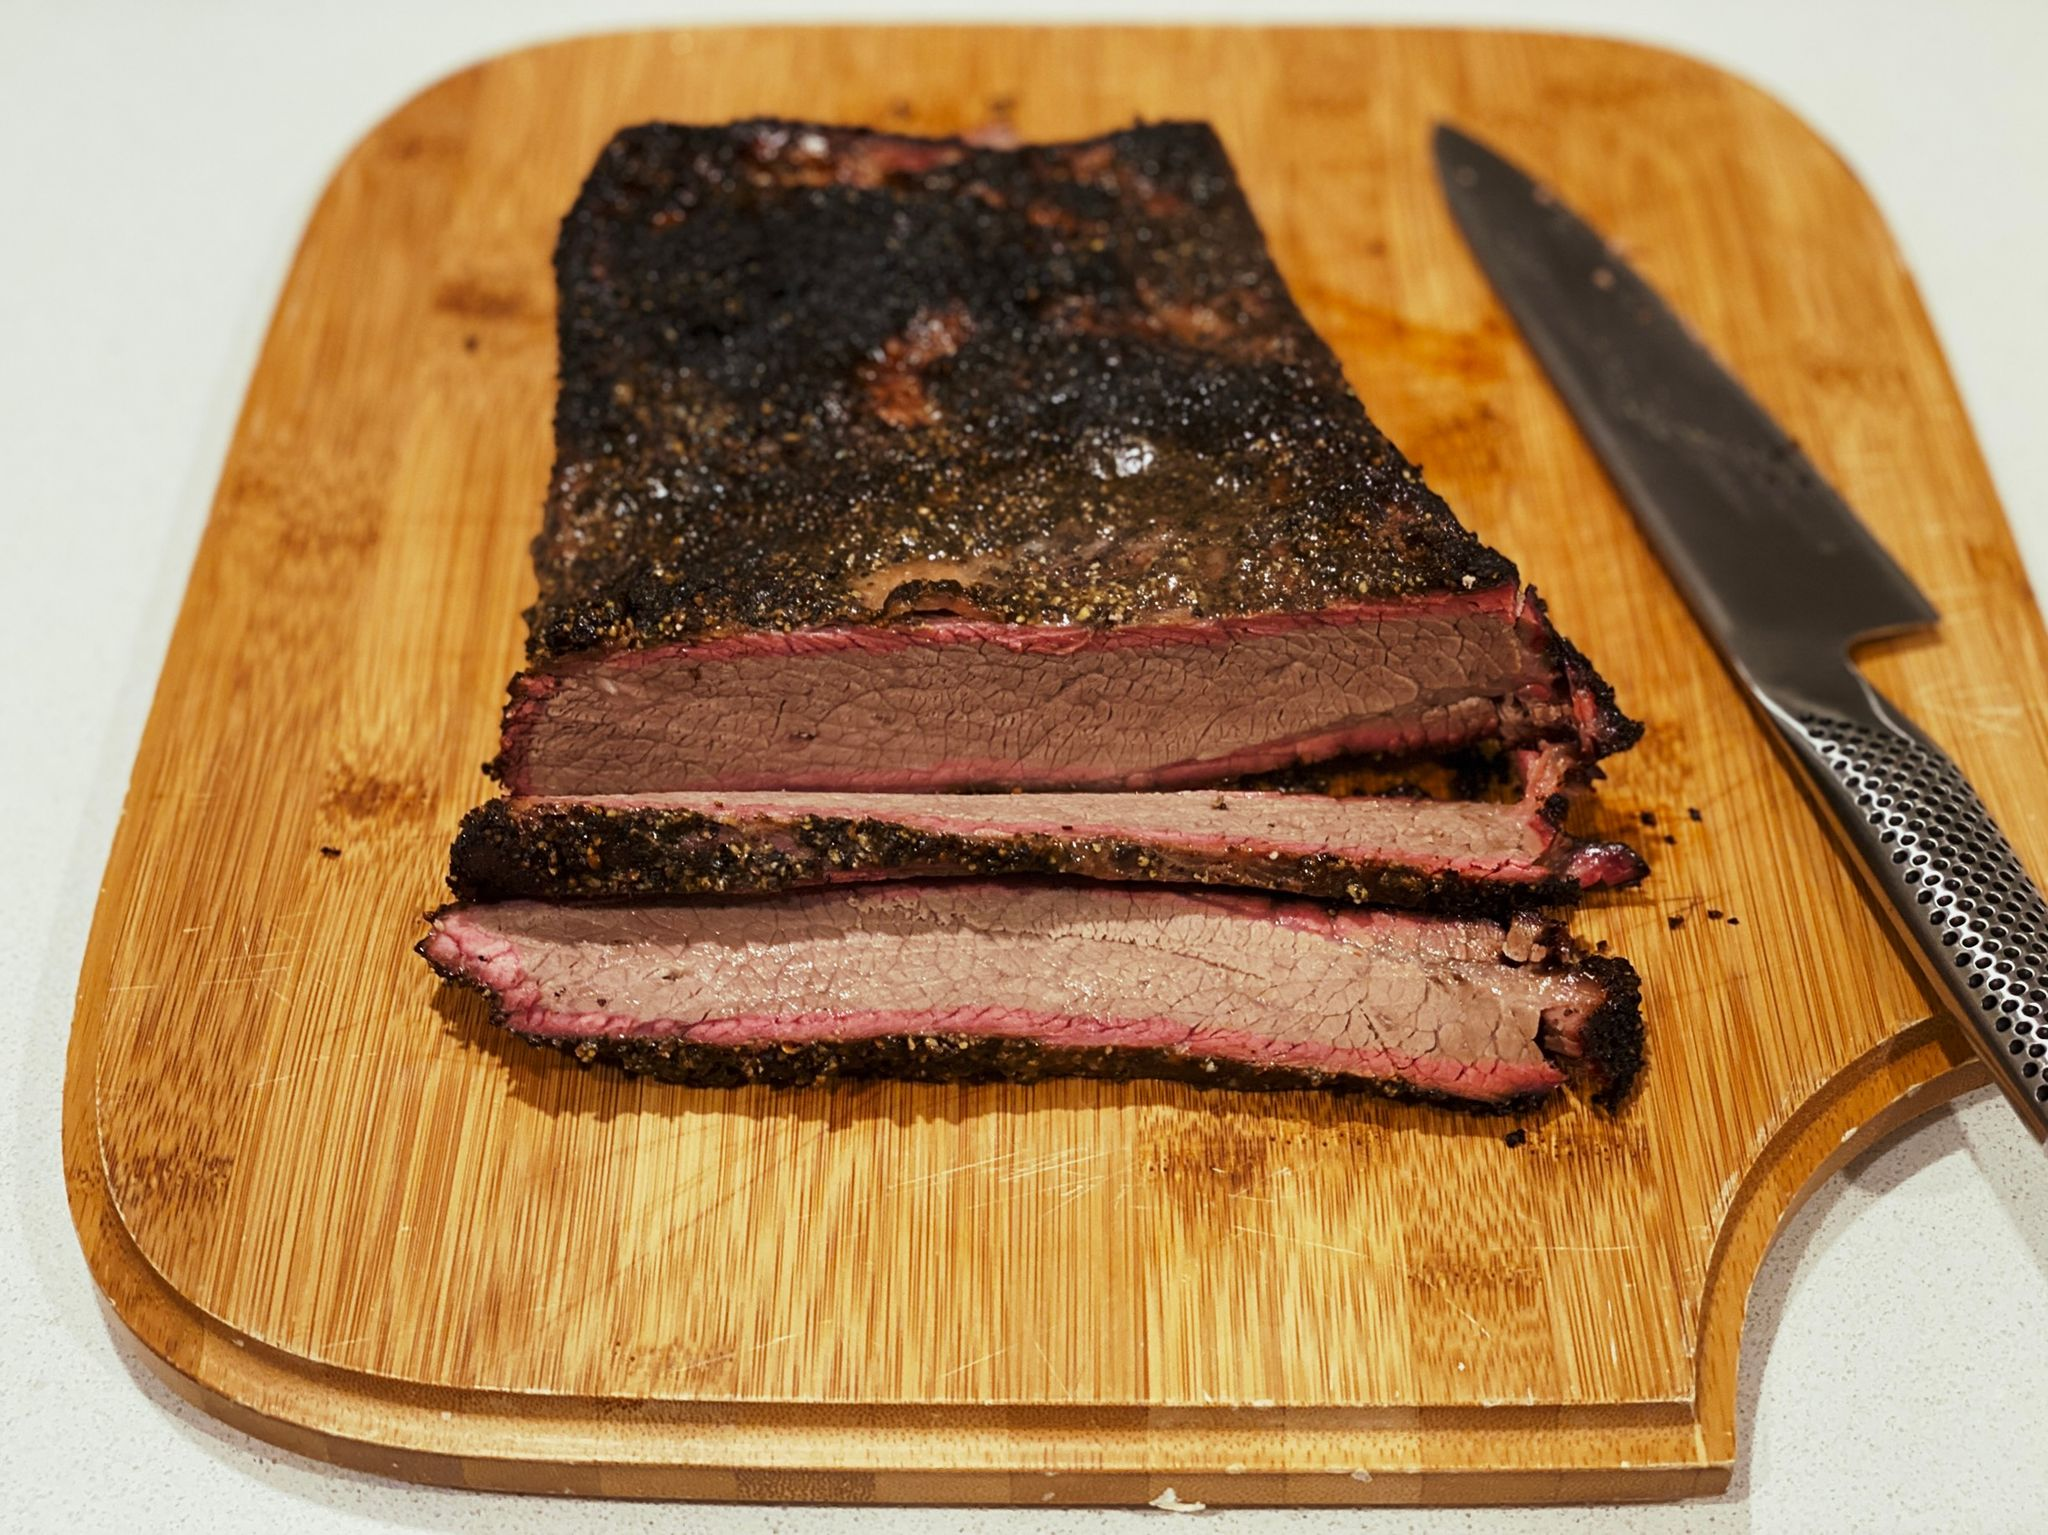 A photo of a cooked beef brisket sitting on a cutting board, with two slices have been done and a fantastic smoke ring visible.